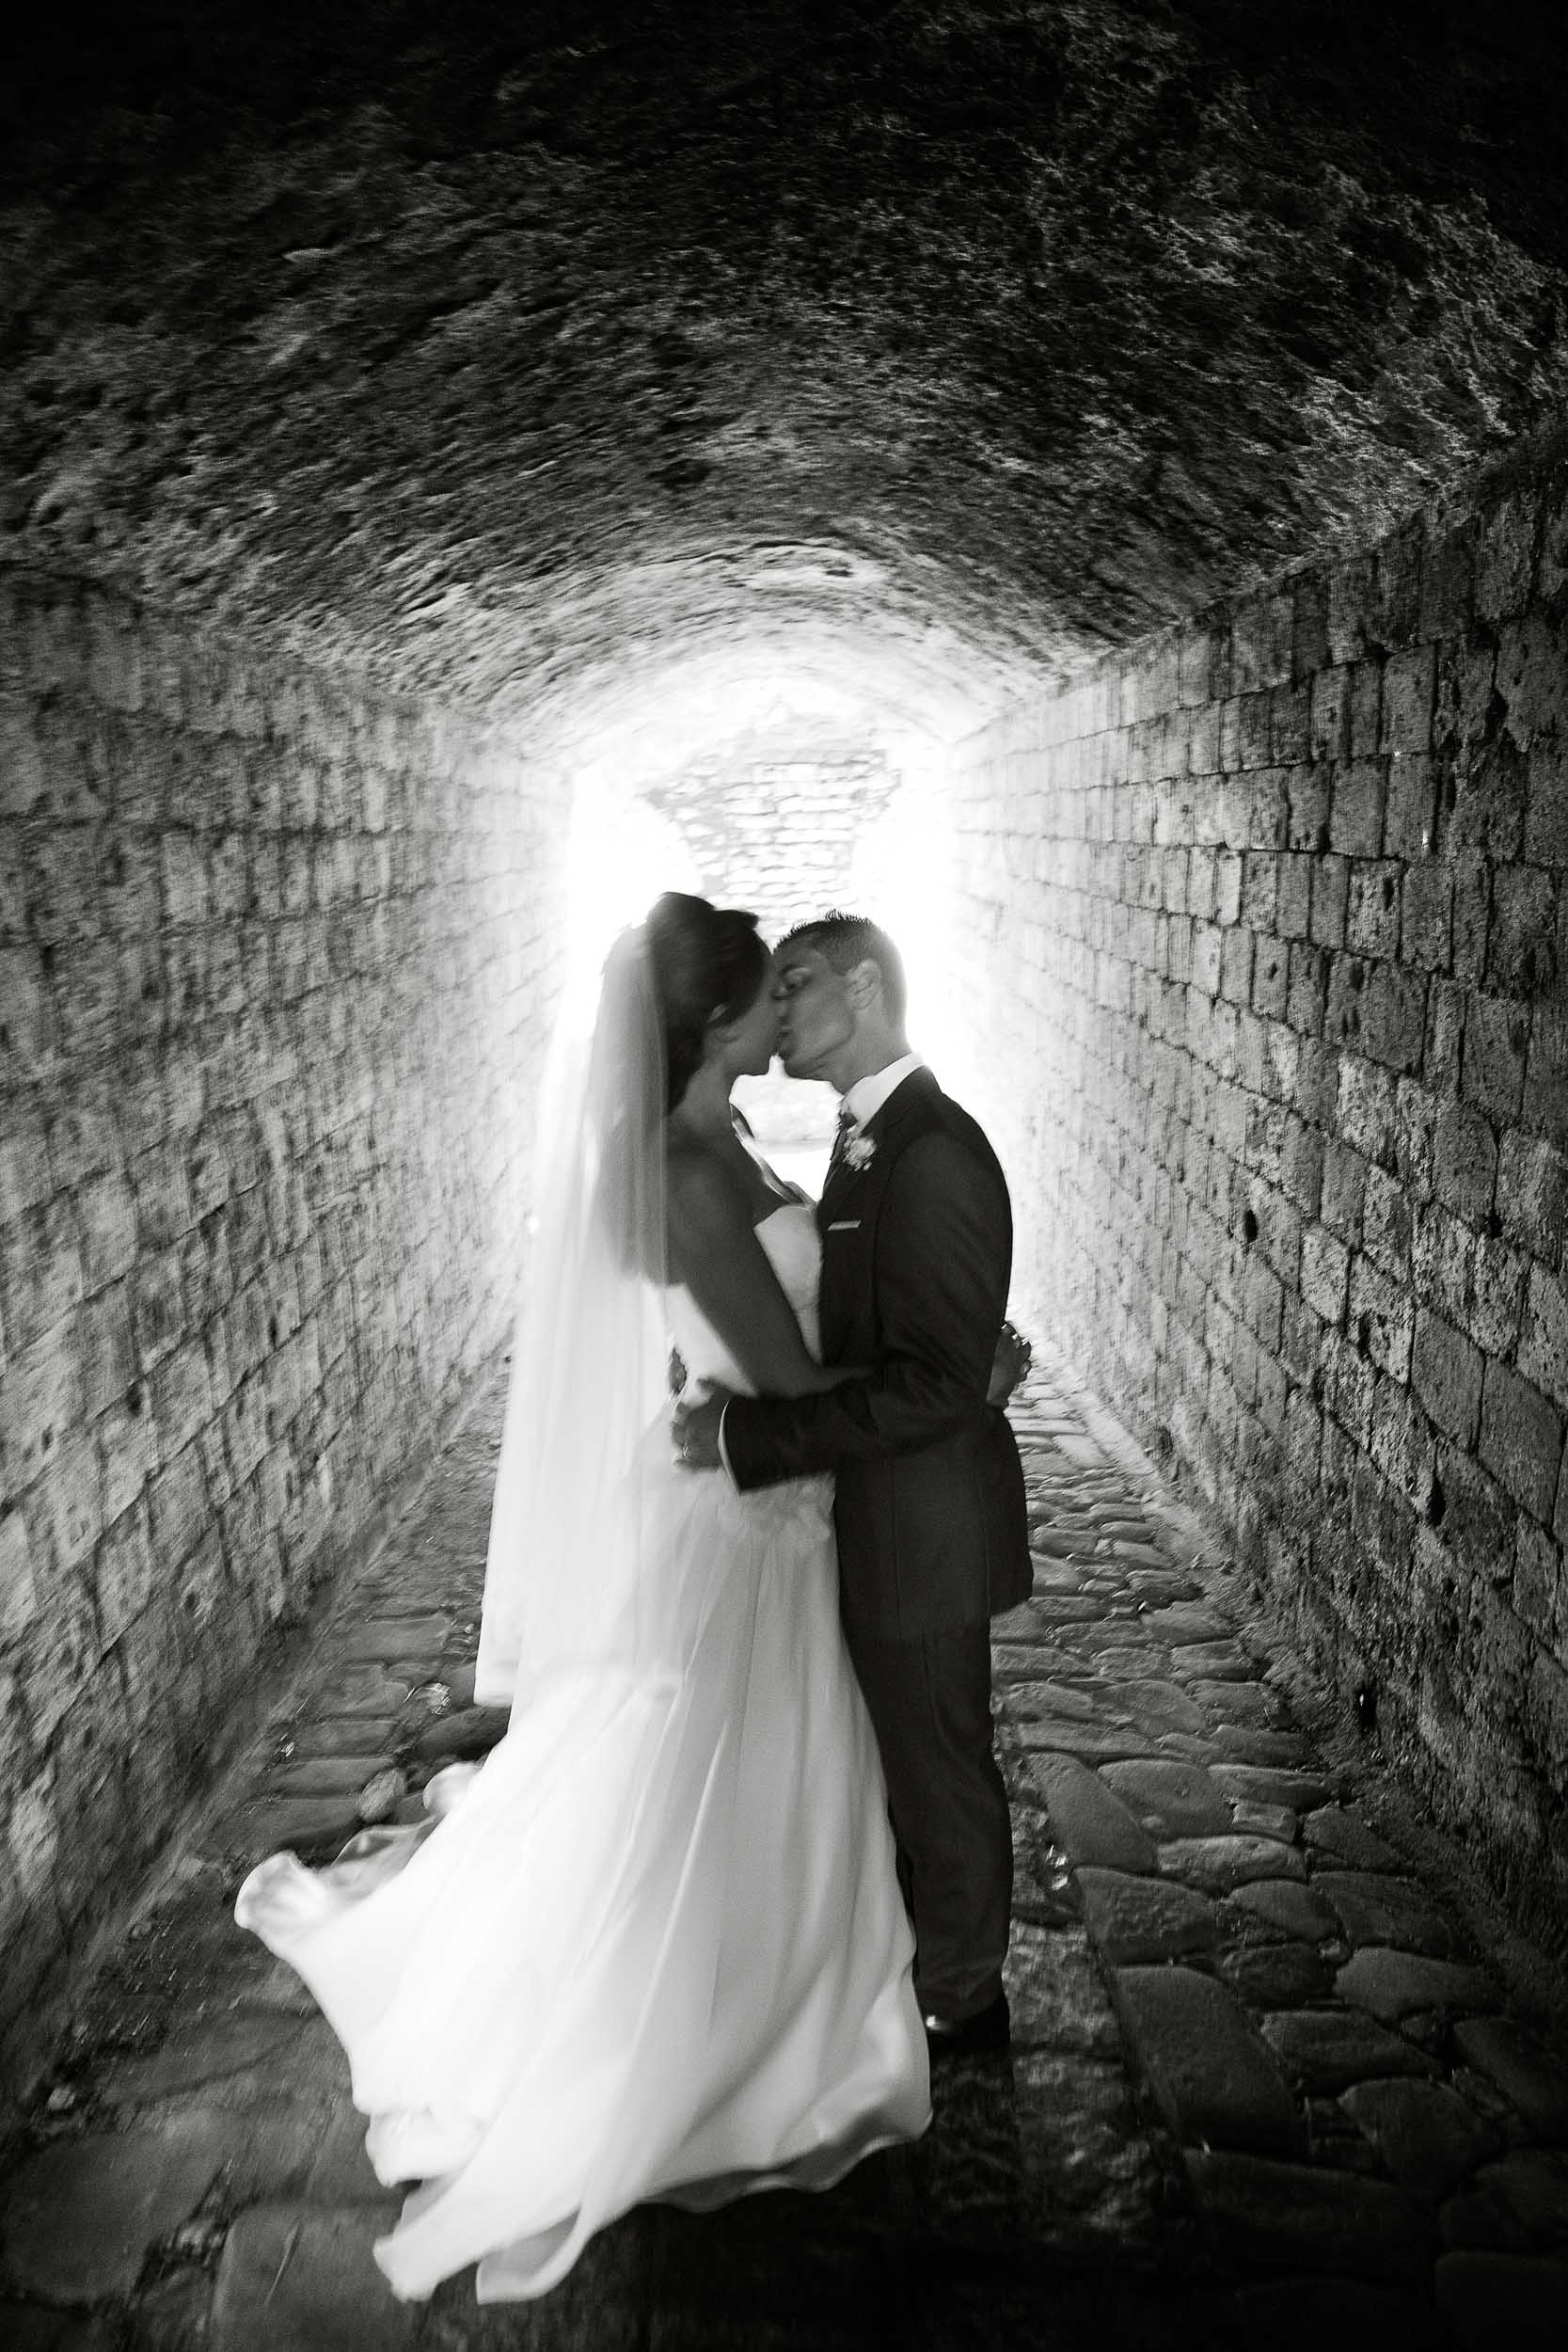 Kissing in a tunnel